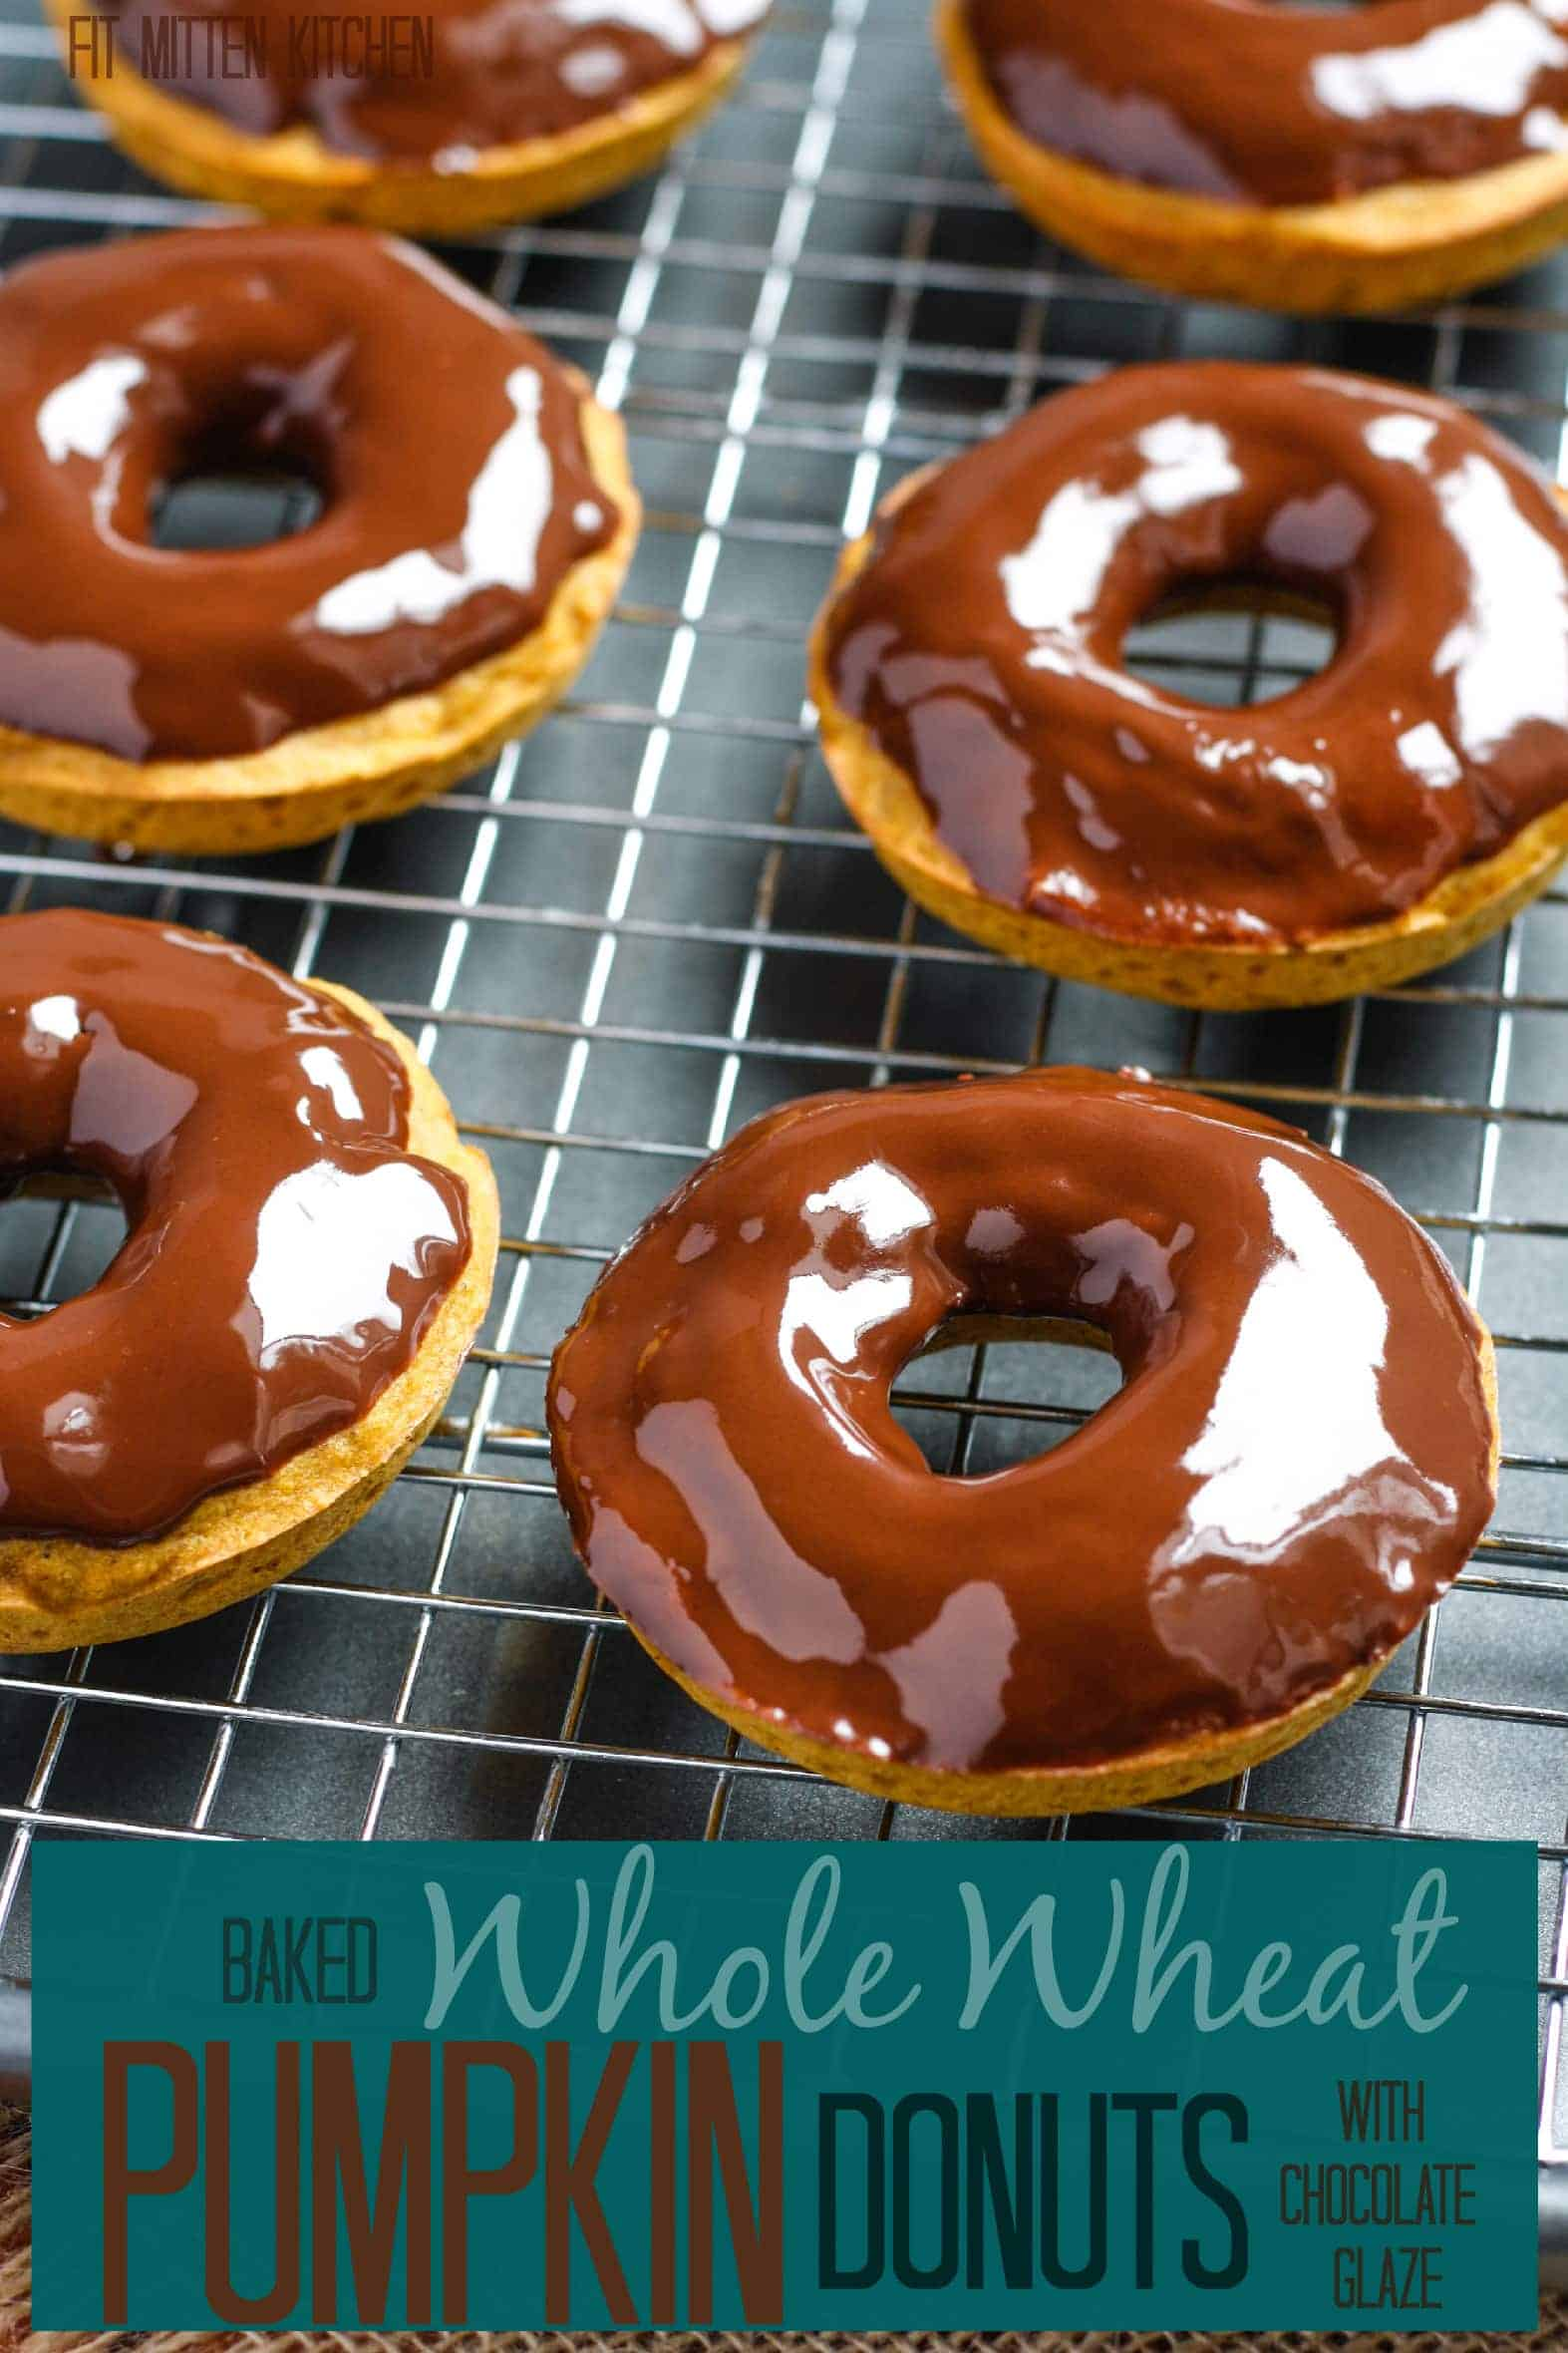 Whole Wheat Pumpkin Donuts [with chocolate glaze] • Fit Mitten Kitchen